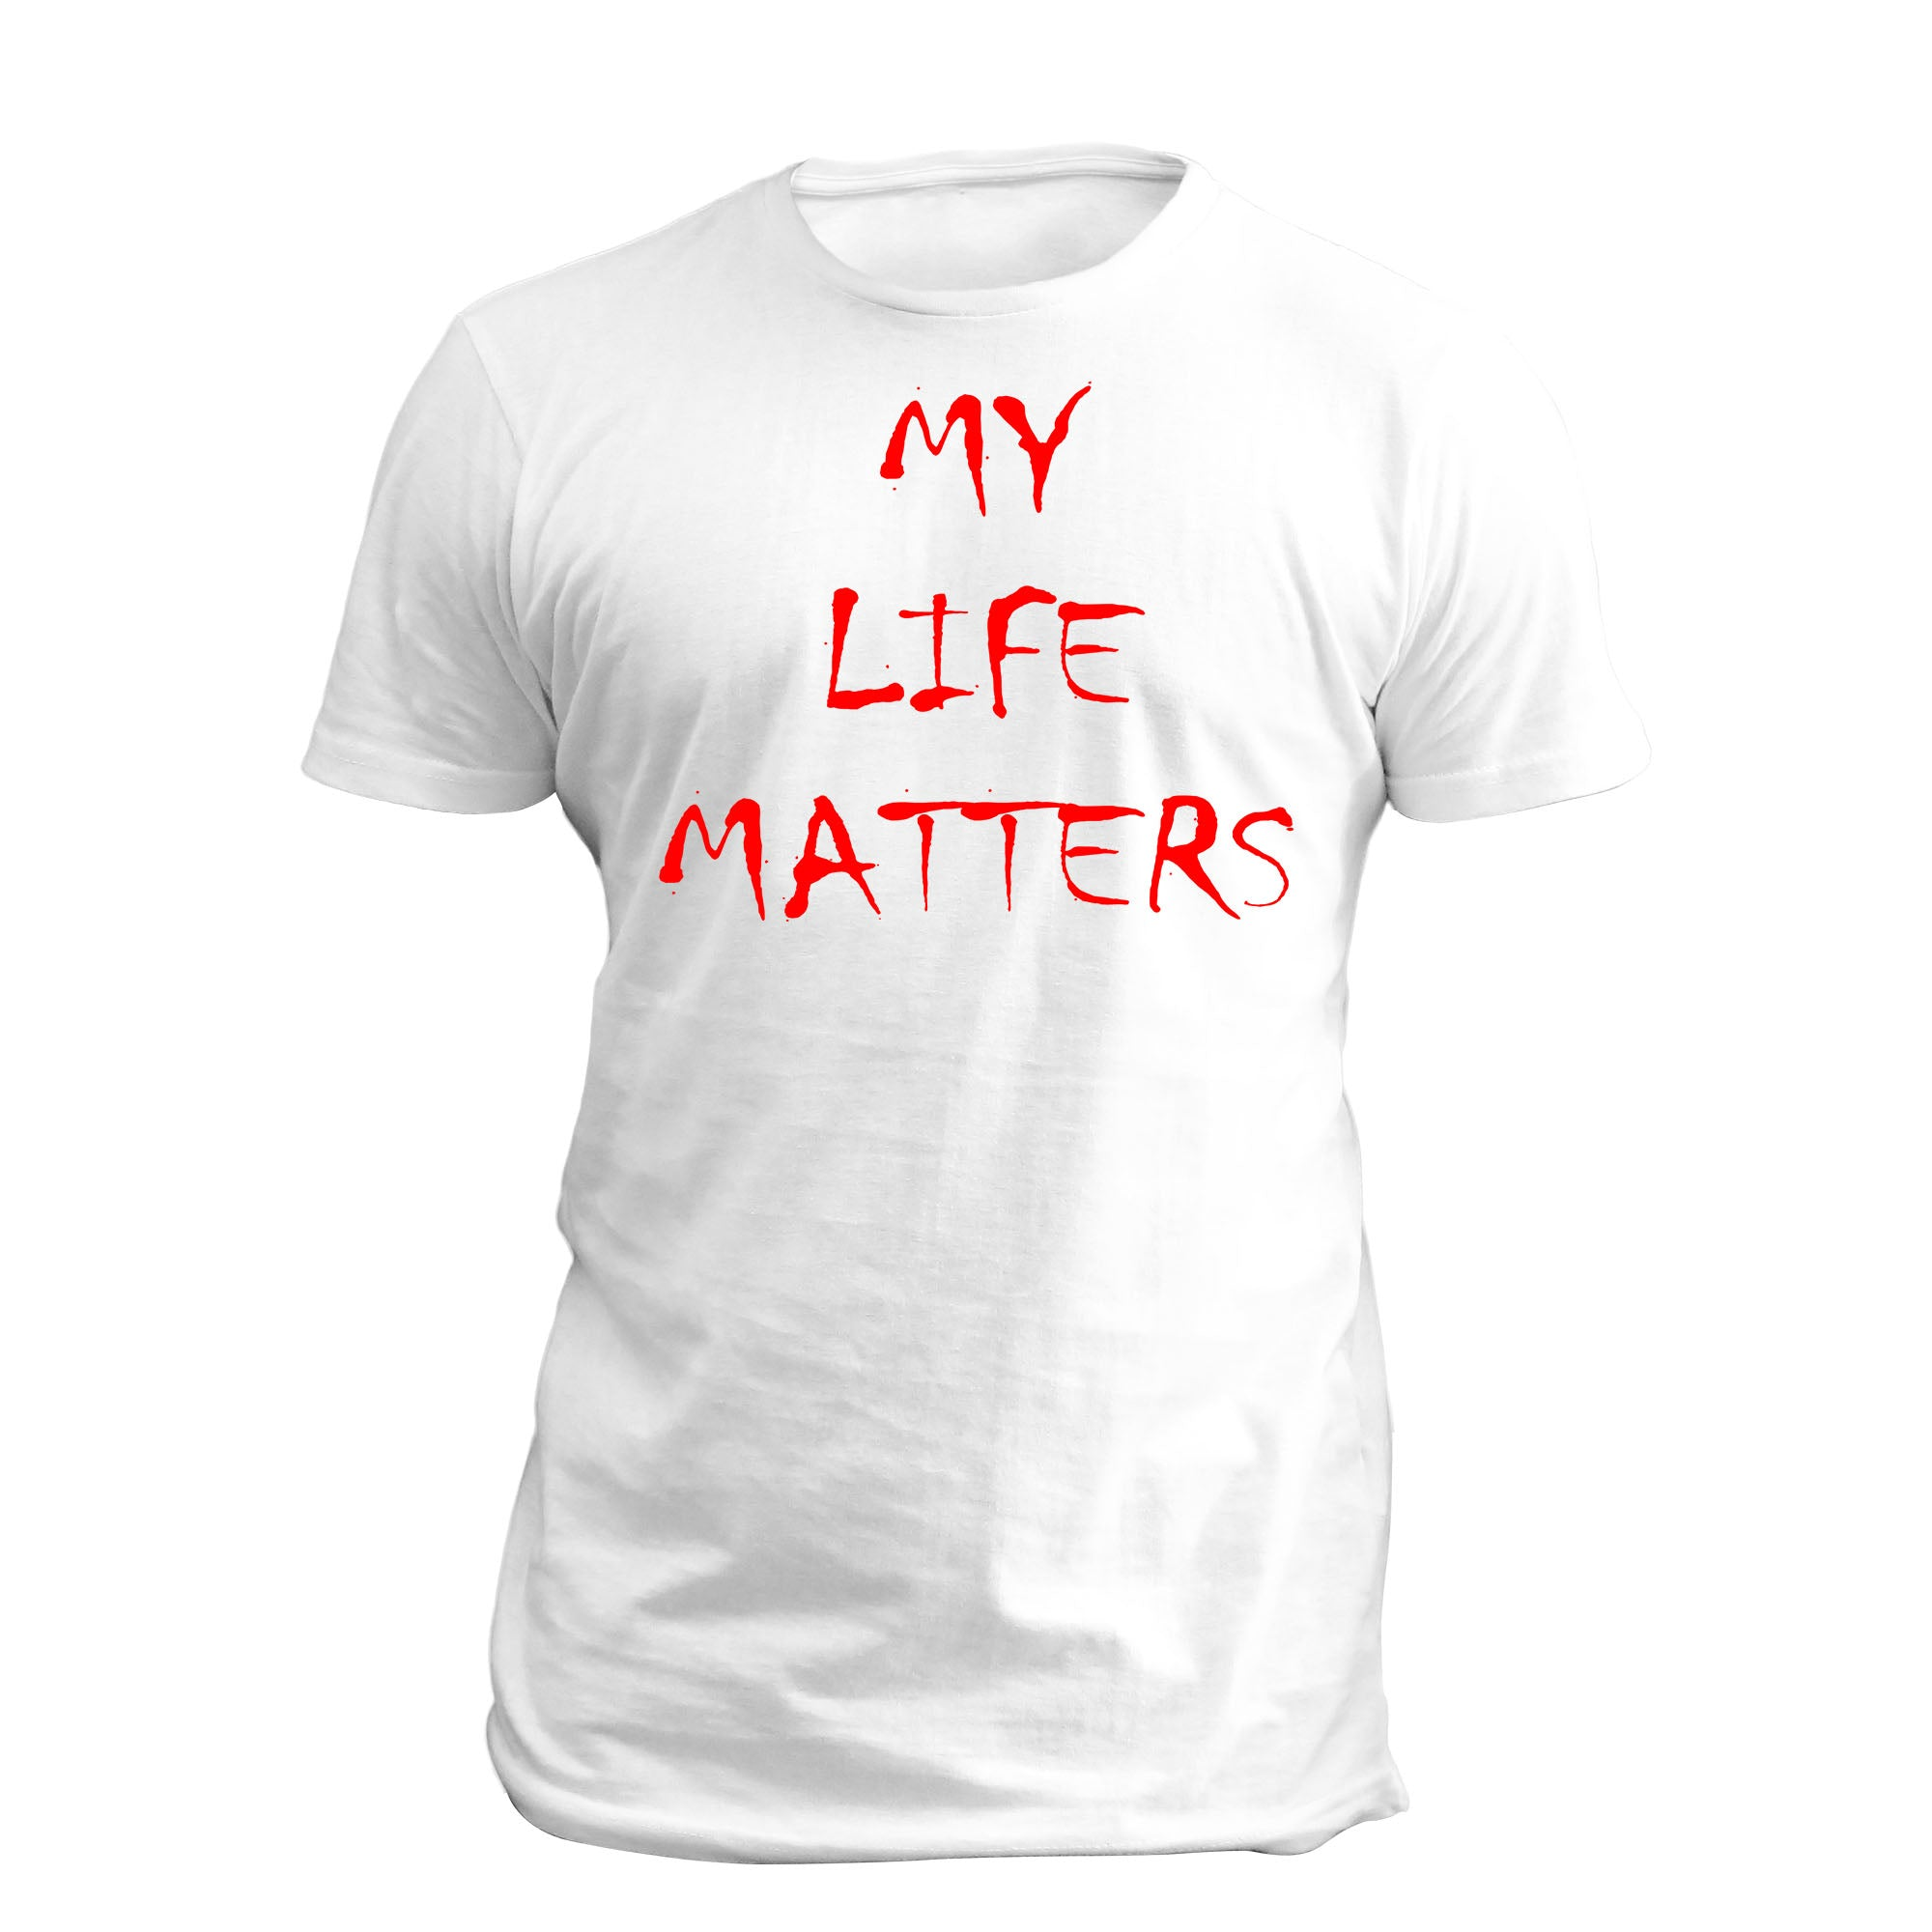 My LIfe Matters by NHZ SS Full T Shirt White